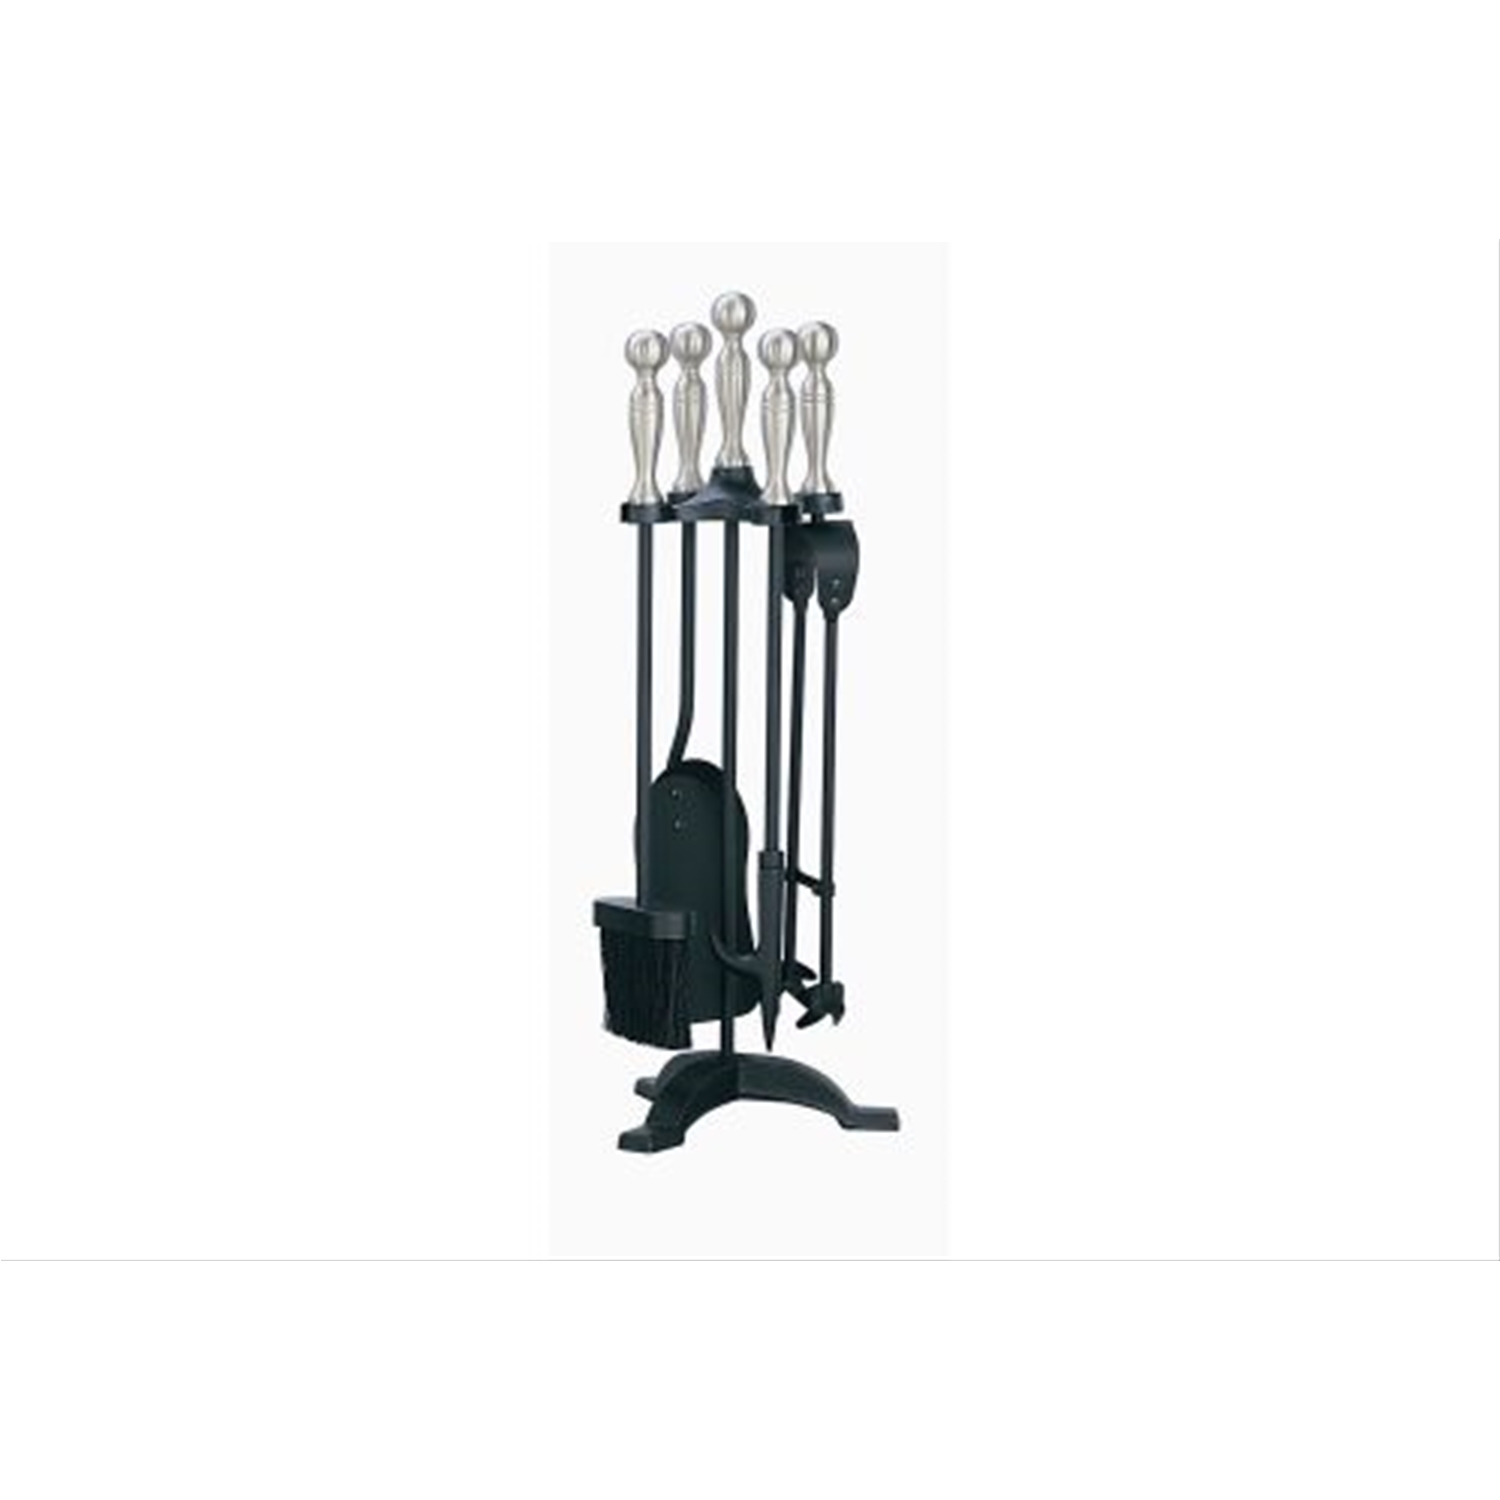 Image of Manor Companion Set, Black And Pewter